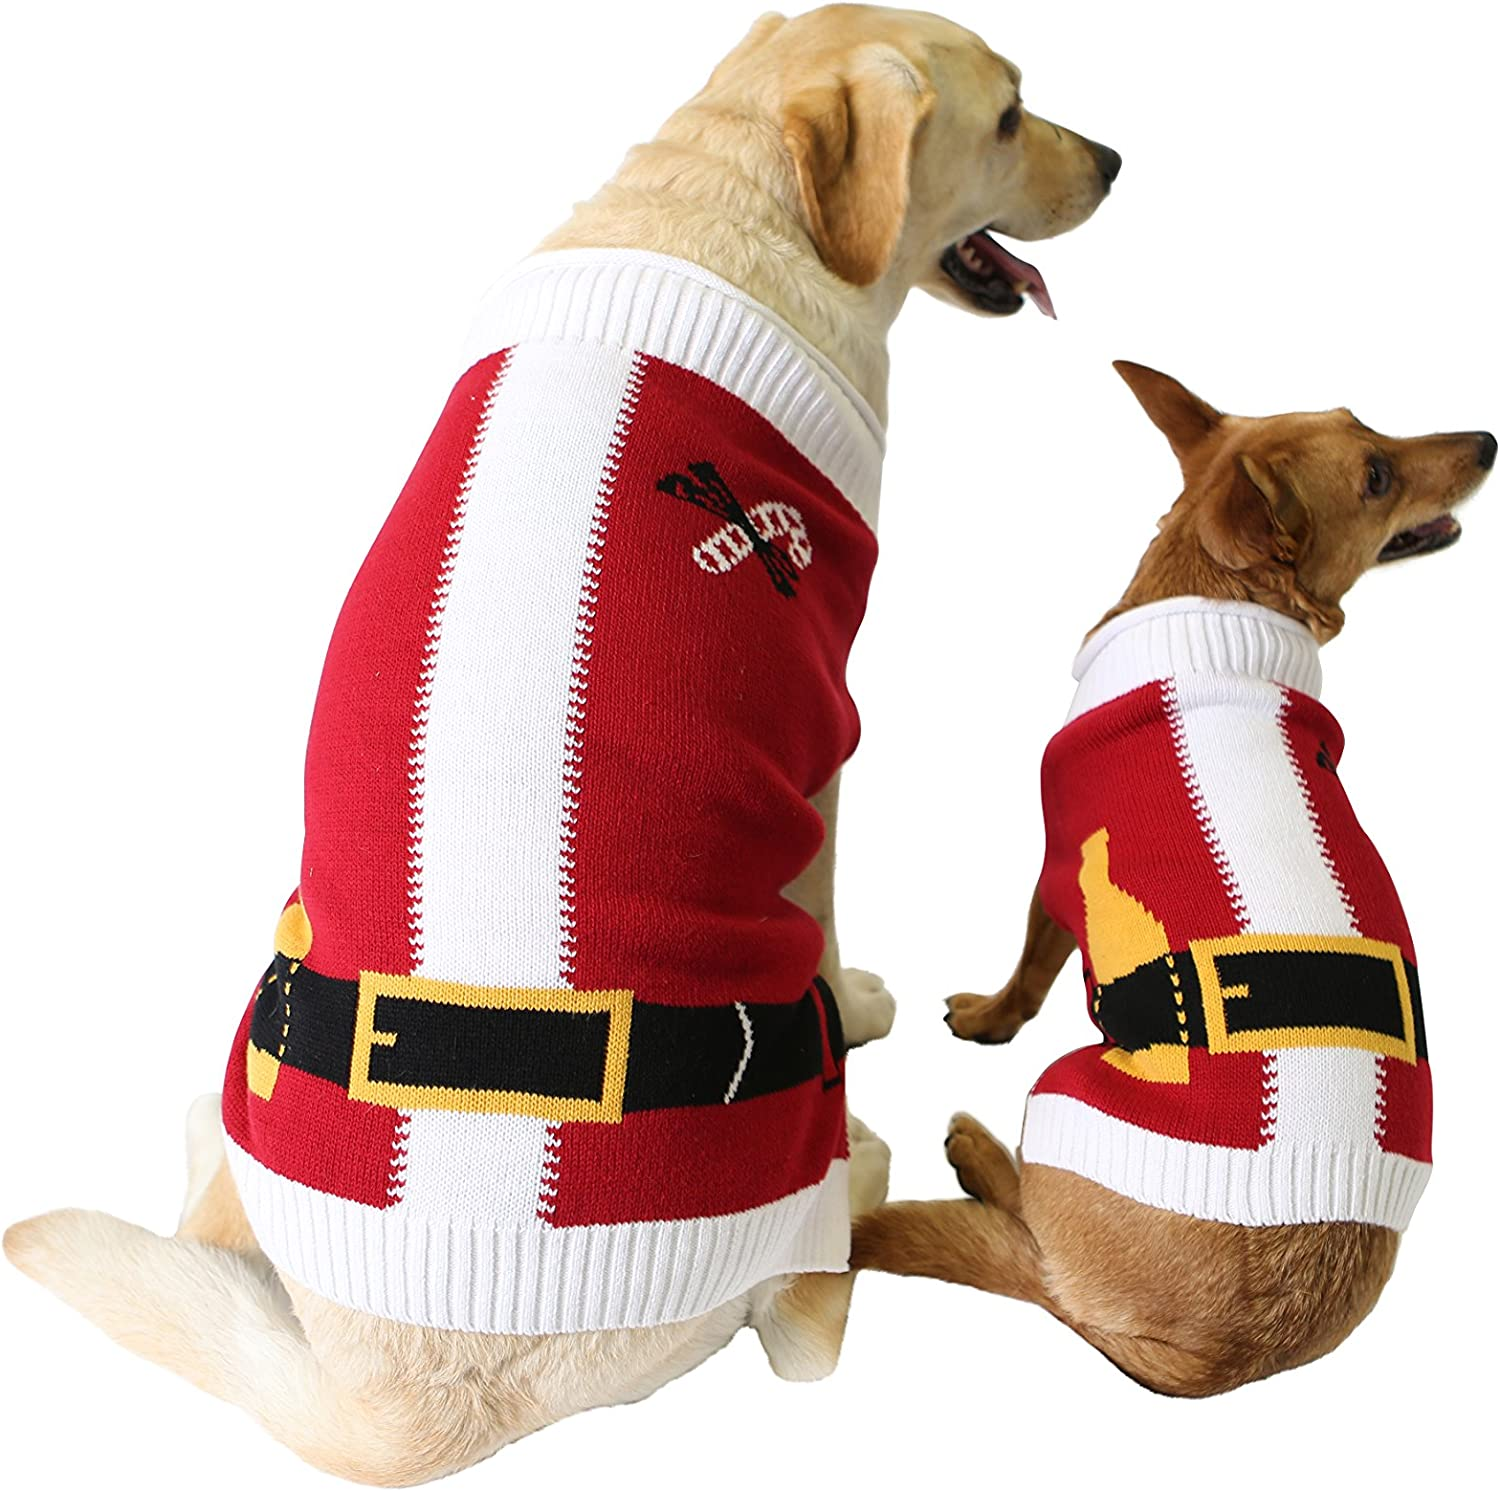 Ugly Christmas Sweater Santa Suit Dog Sweater